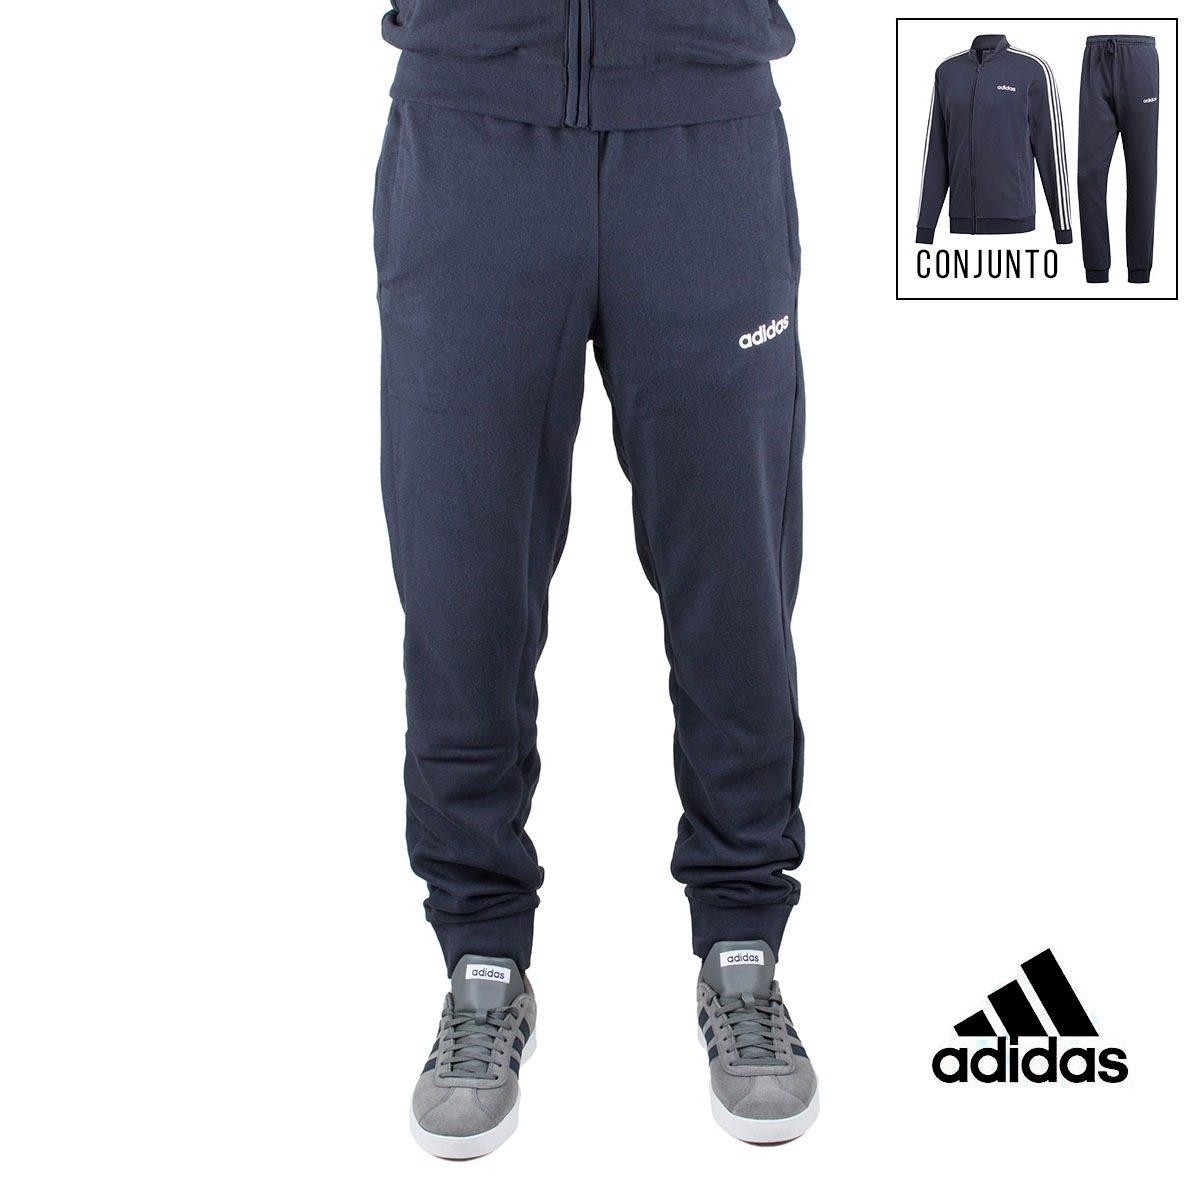 Adidas chándal conjunto Tracksuit Cotton Relax Marino hombre